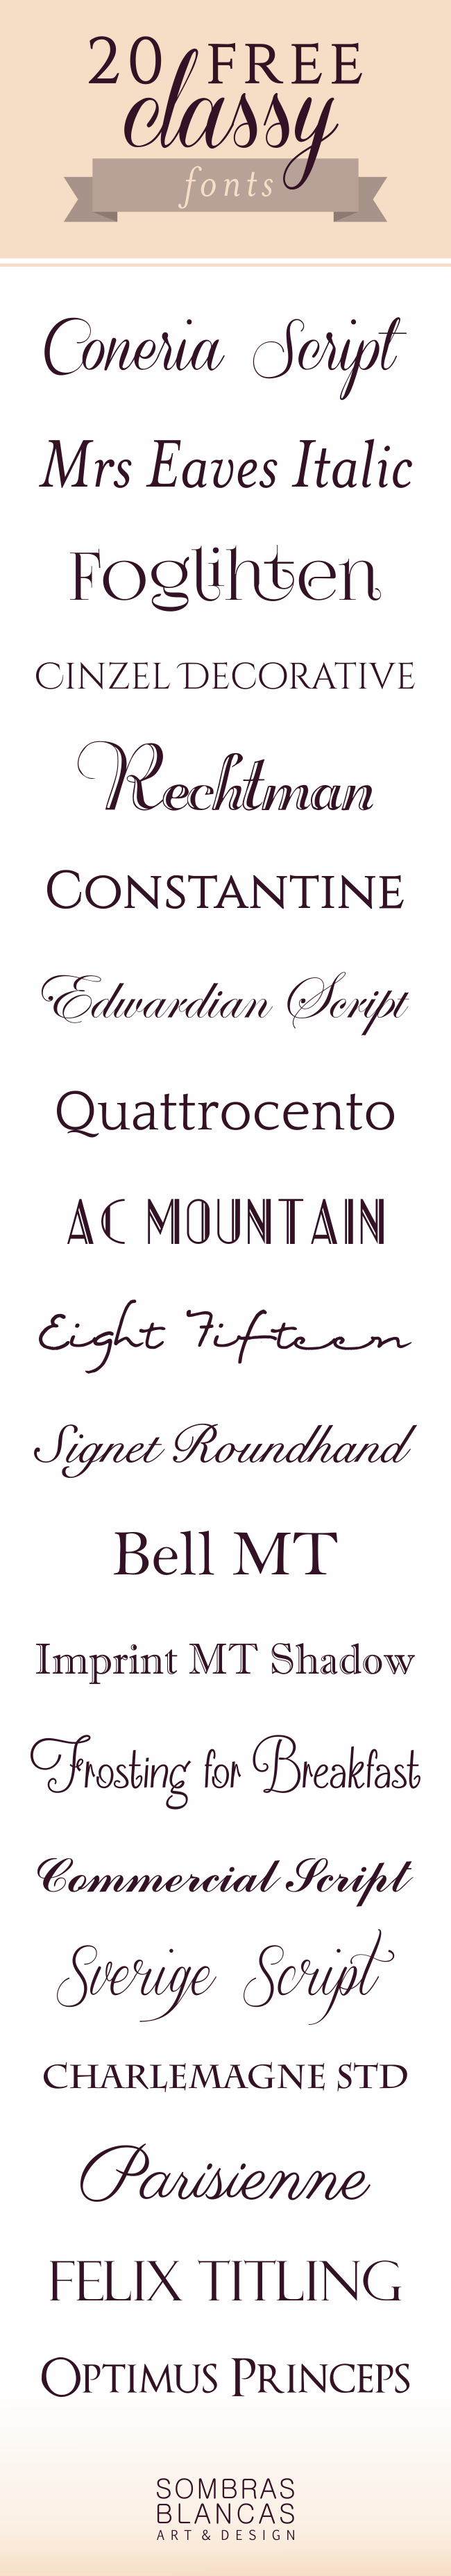 20 Classy Fonts to Download for Free + March discount!